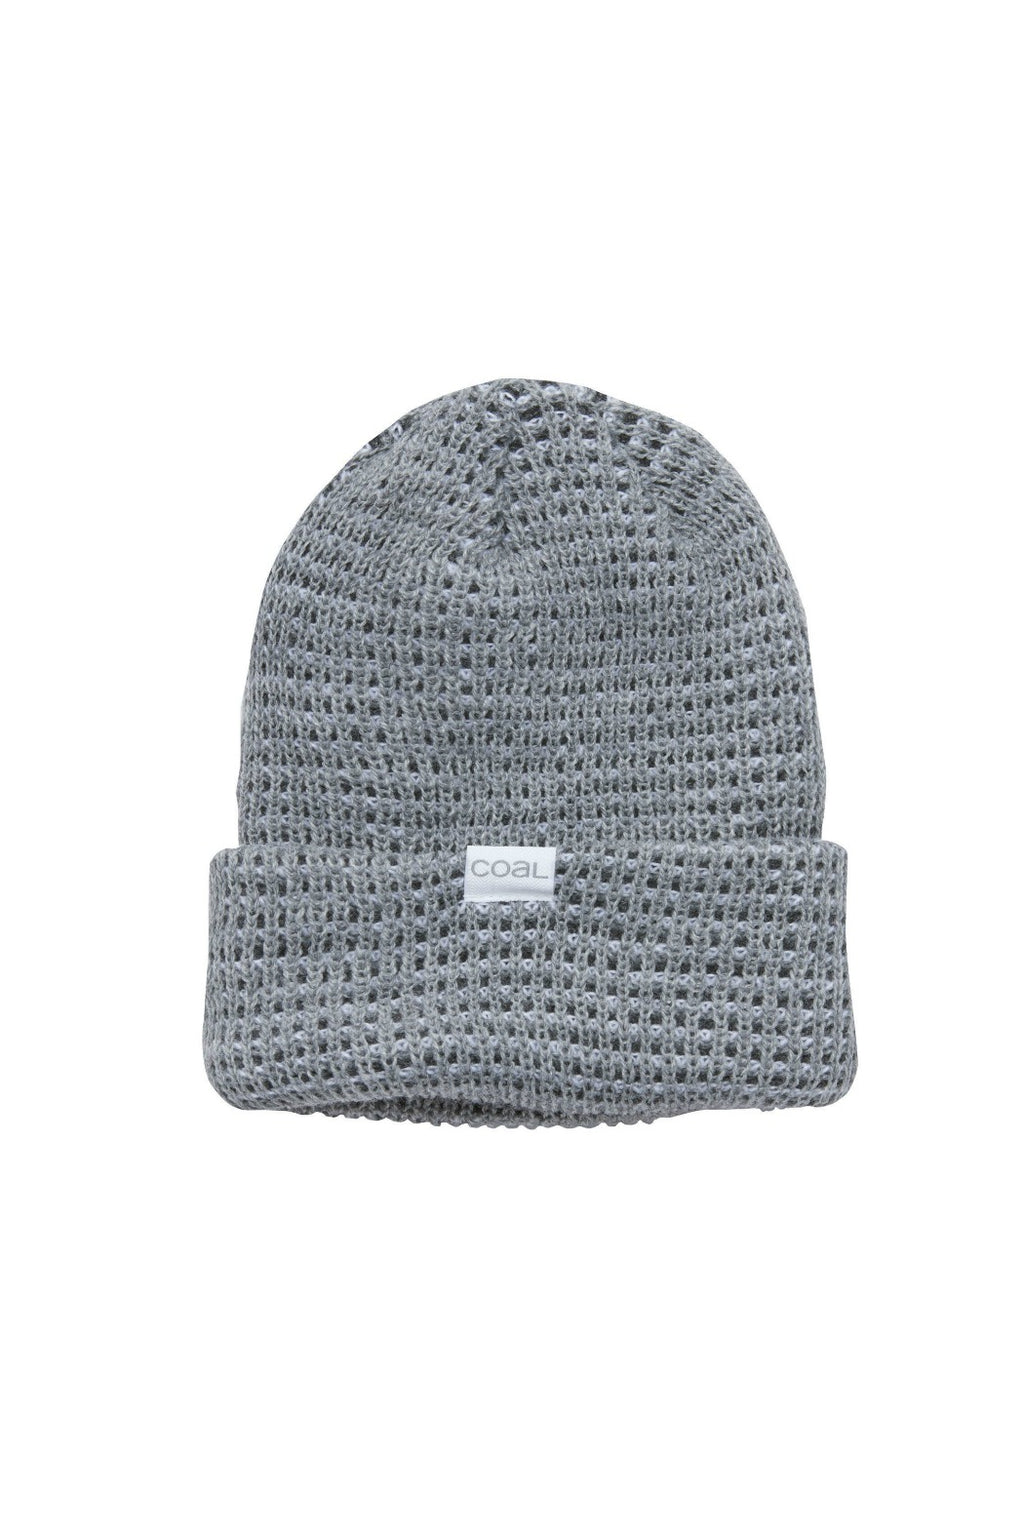 Coal Davey Beanie - Heather Grey